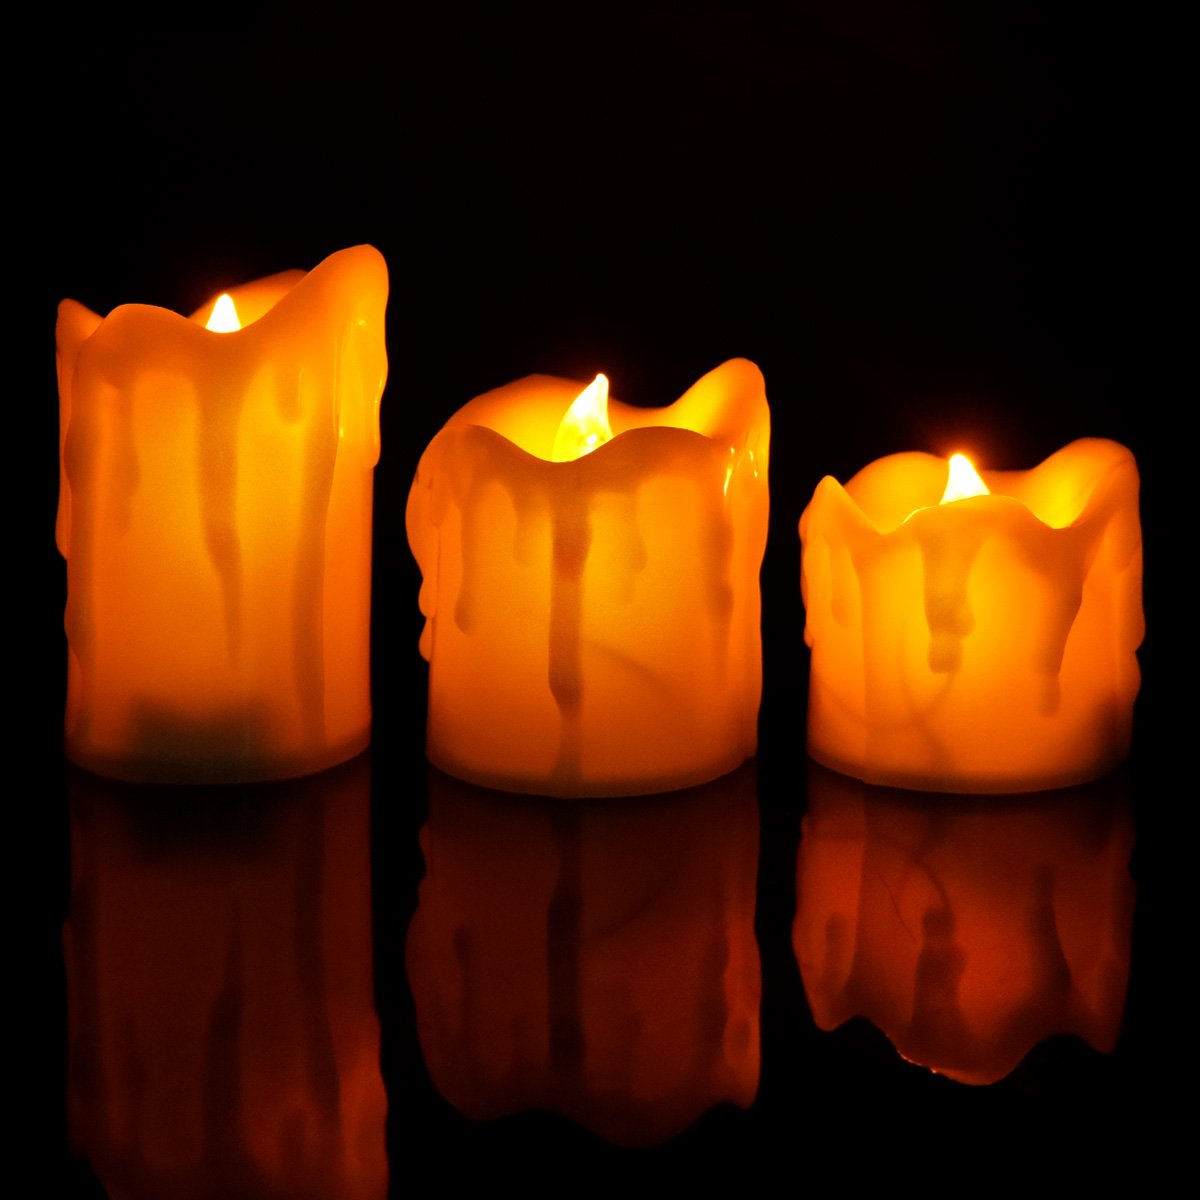 Cozeyat Flameless Candles AAA Battery Operated, 3 Assorted Sizes Advent Led Teallight Ivory White Flickering Candles Luminara Christmas Thanksgiving Home Decoration